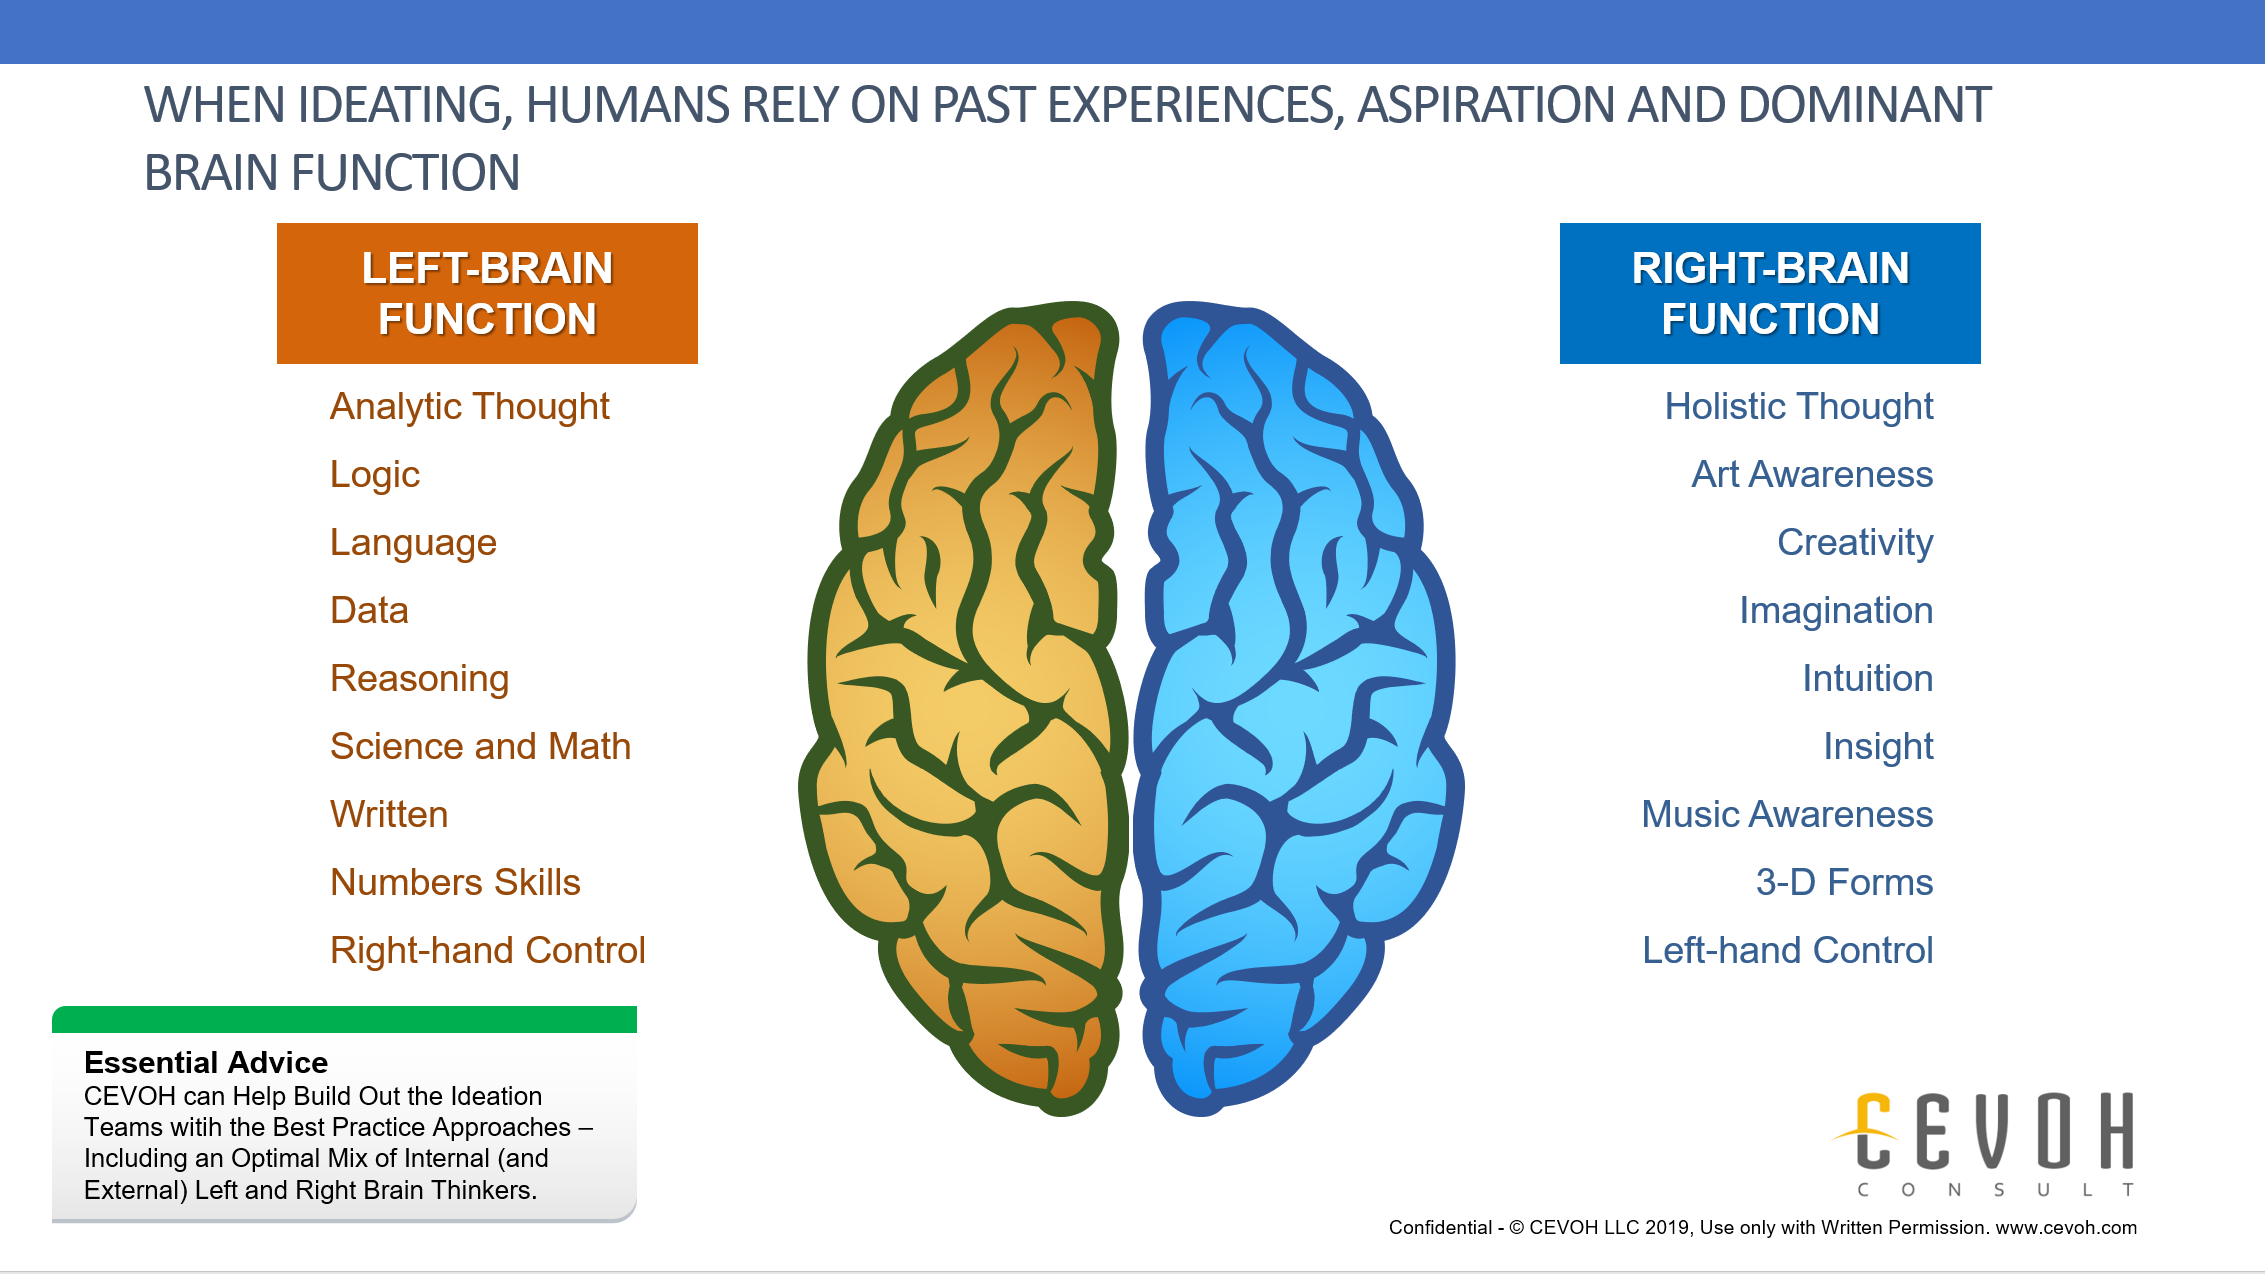 As the previous chart introduced, we are all subject to bias in our creation of ideas. In this chart - and as a reminder, we can have either a left brain dominate, right brain dominate or both brain dominate orientation. As you can see, the natural comfortable function can dominate during ideation sessions. CEVOH can help build the right ideation teams with best practice approaches so that all functions contribute to the best ideas.